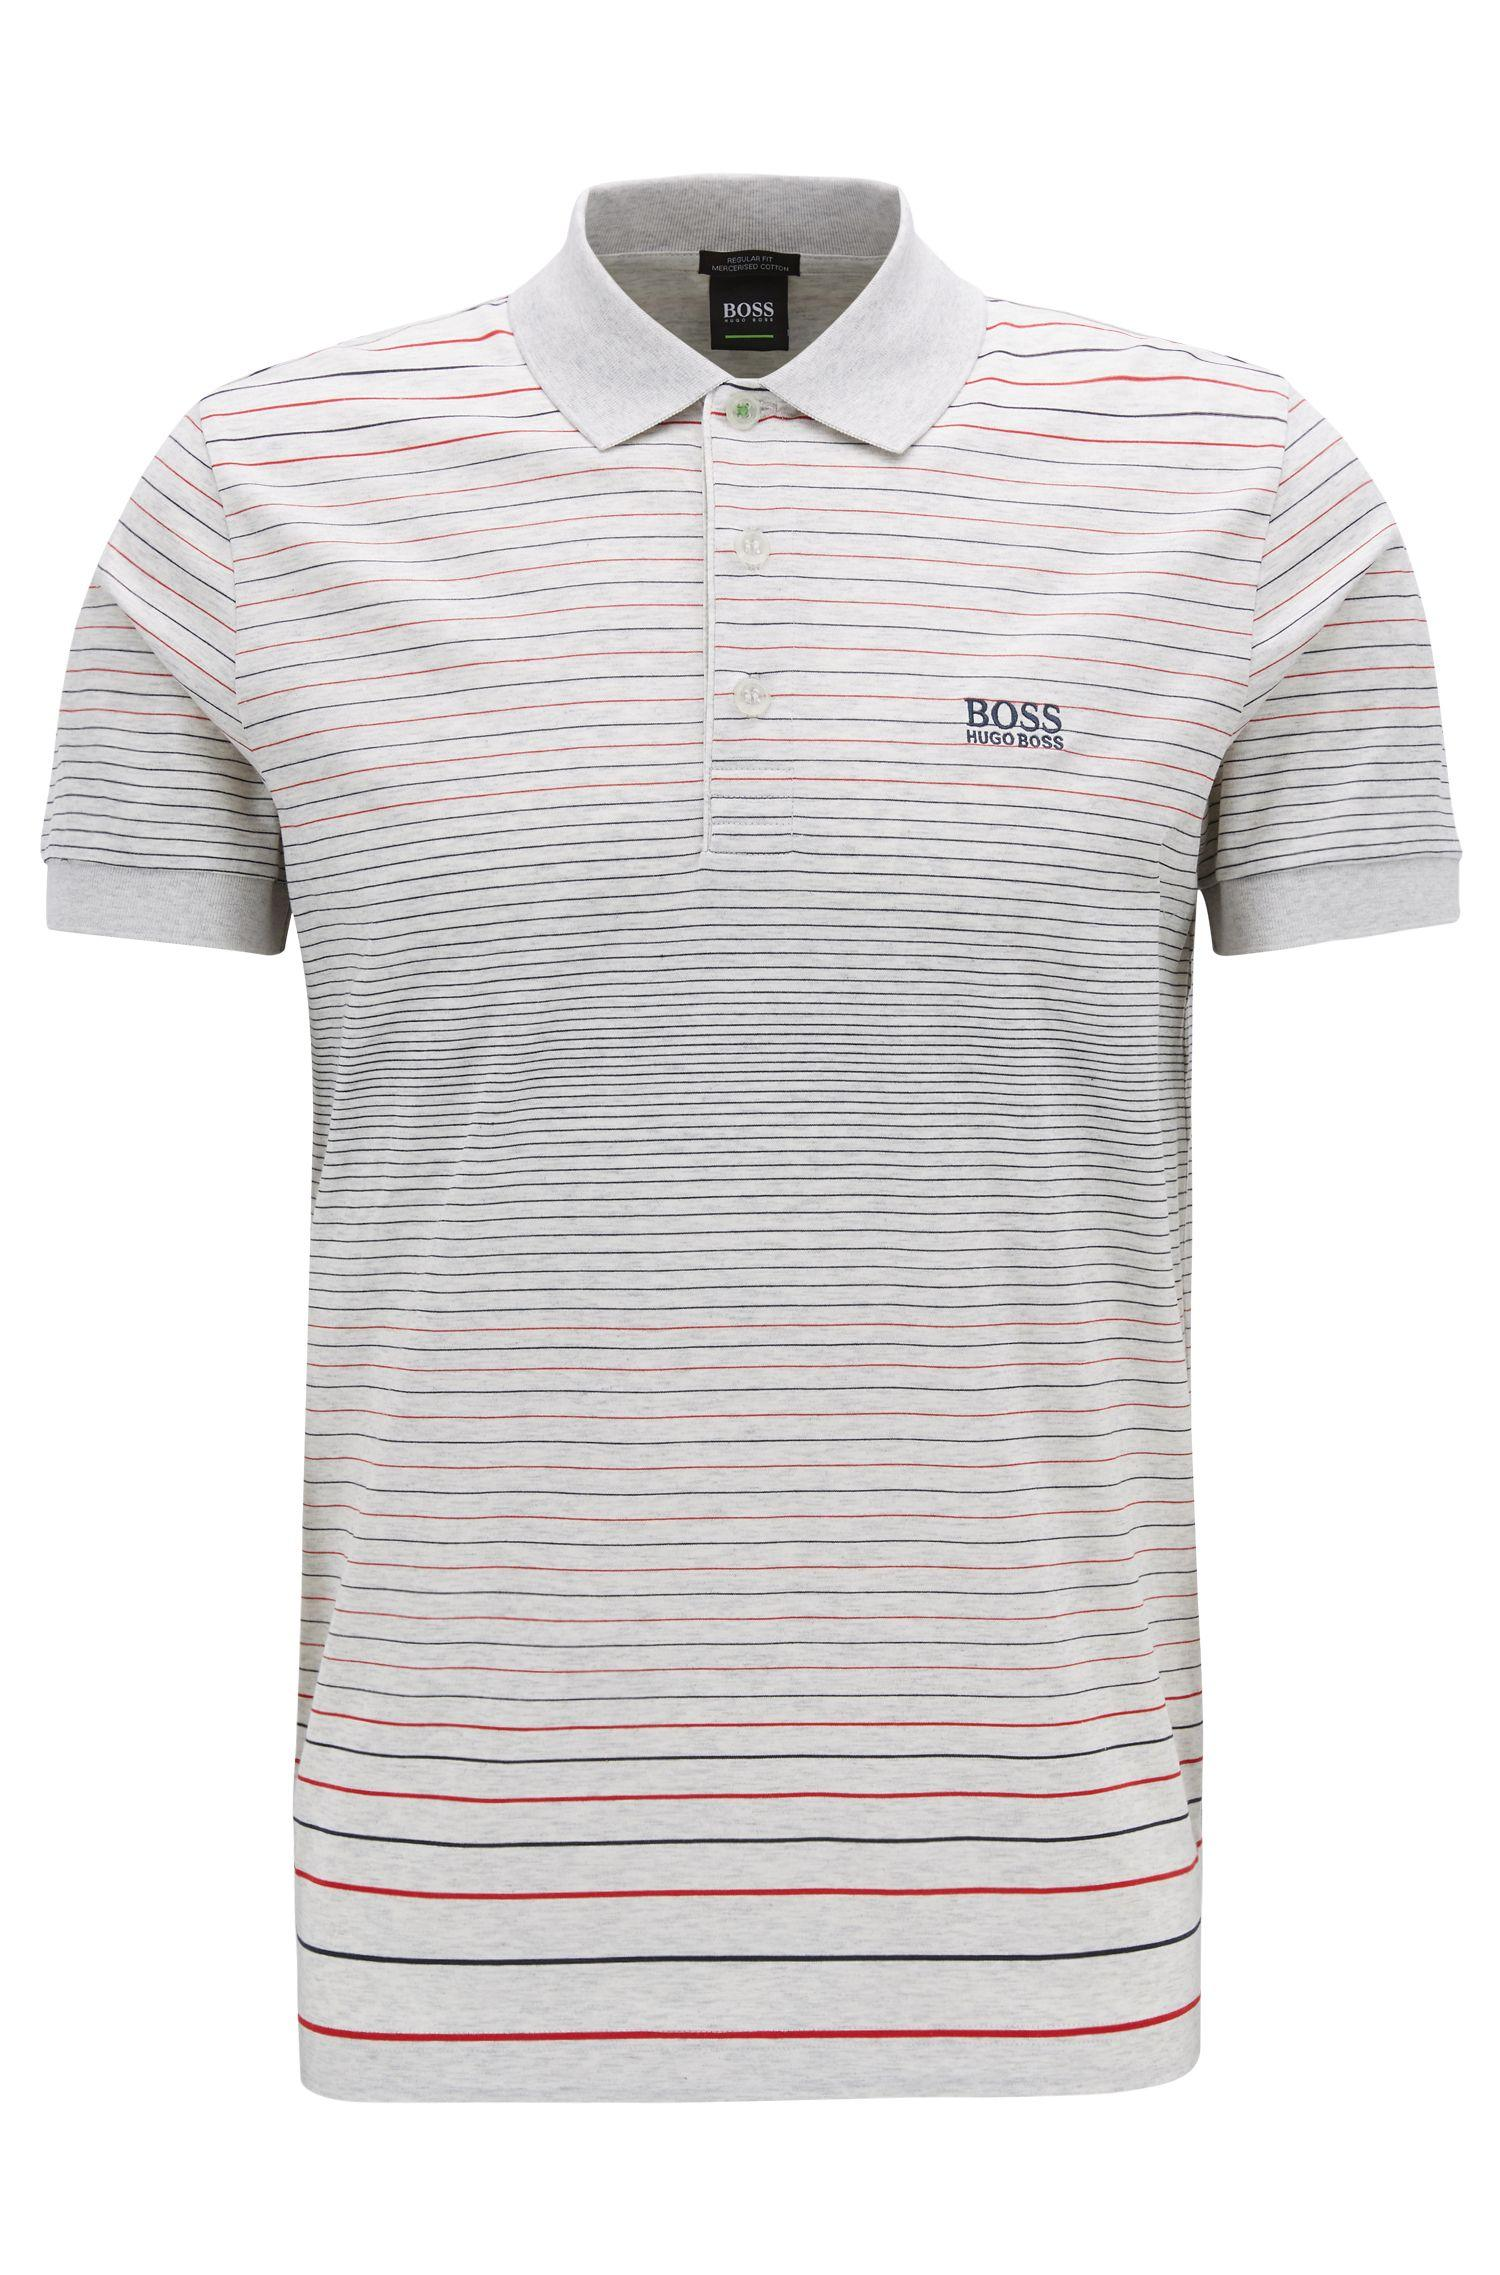 5f3568552 BOSS - Gray Regular-fit Polo Shirt In Mercerised Cotton for Men - Lyst.  View fullscreen